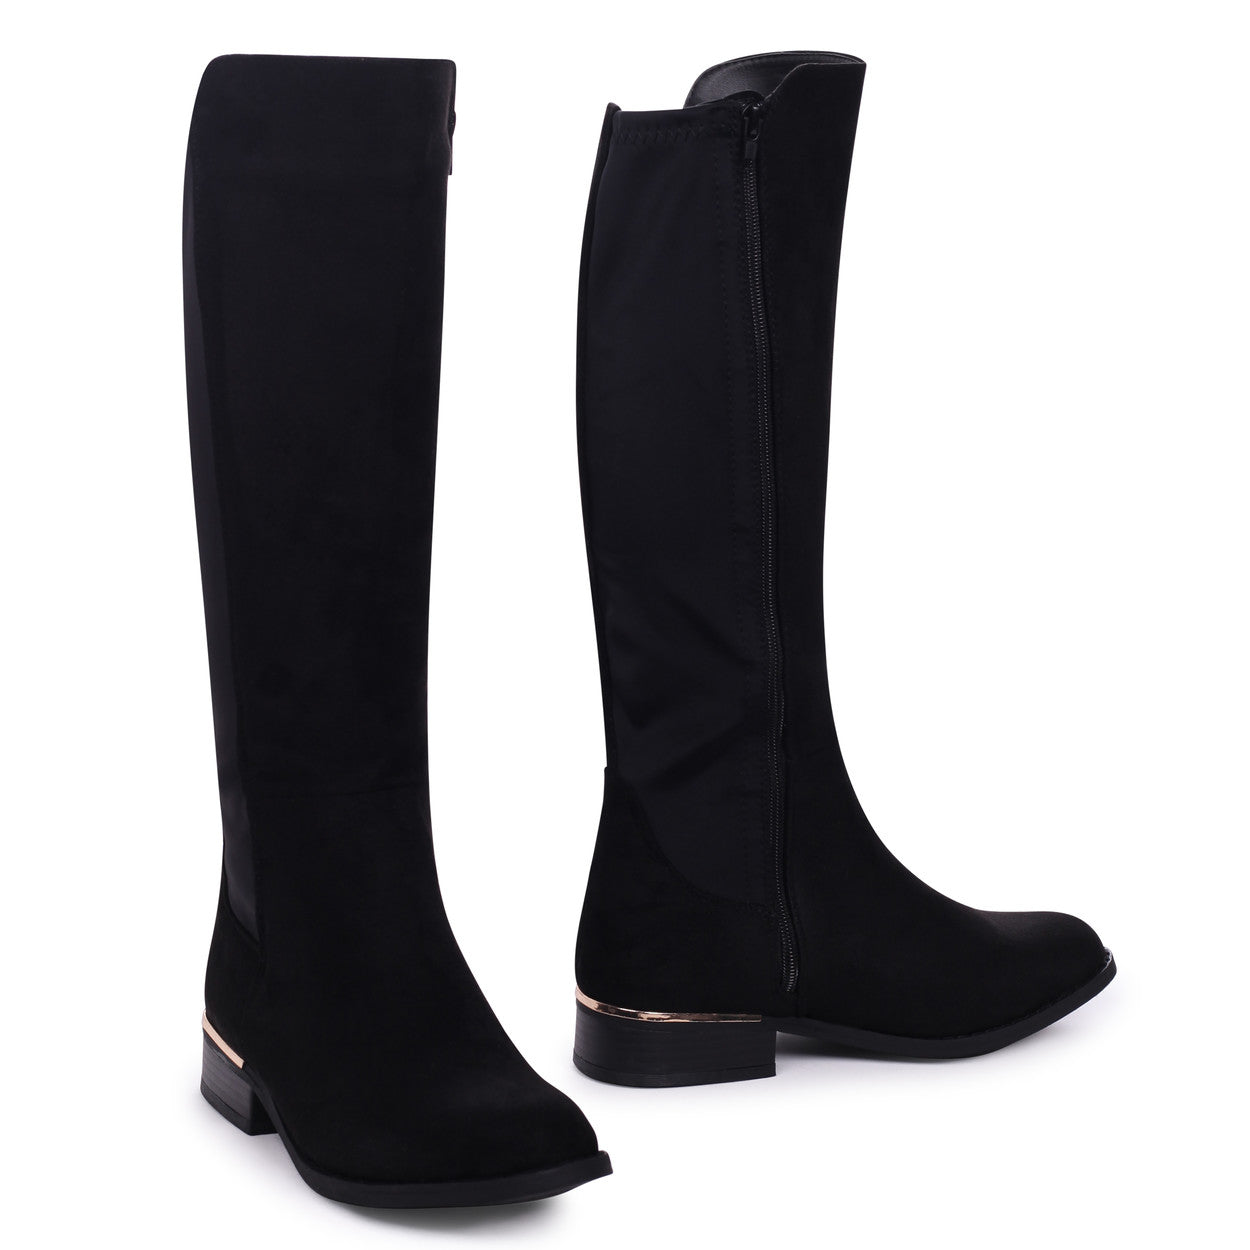 a6636ee0a Black Suede Half Lycra Stretch Boot with Metal Heel Trim – Linzi